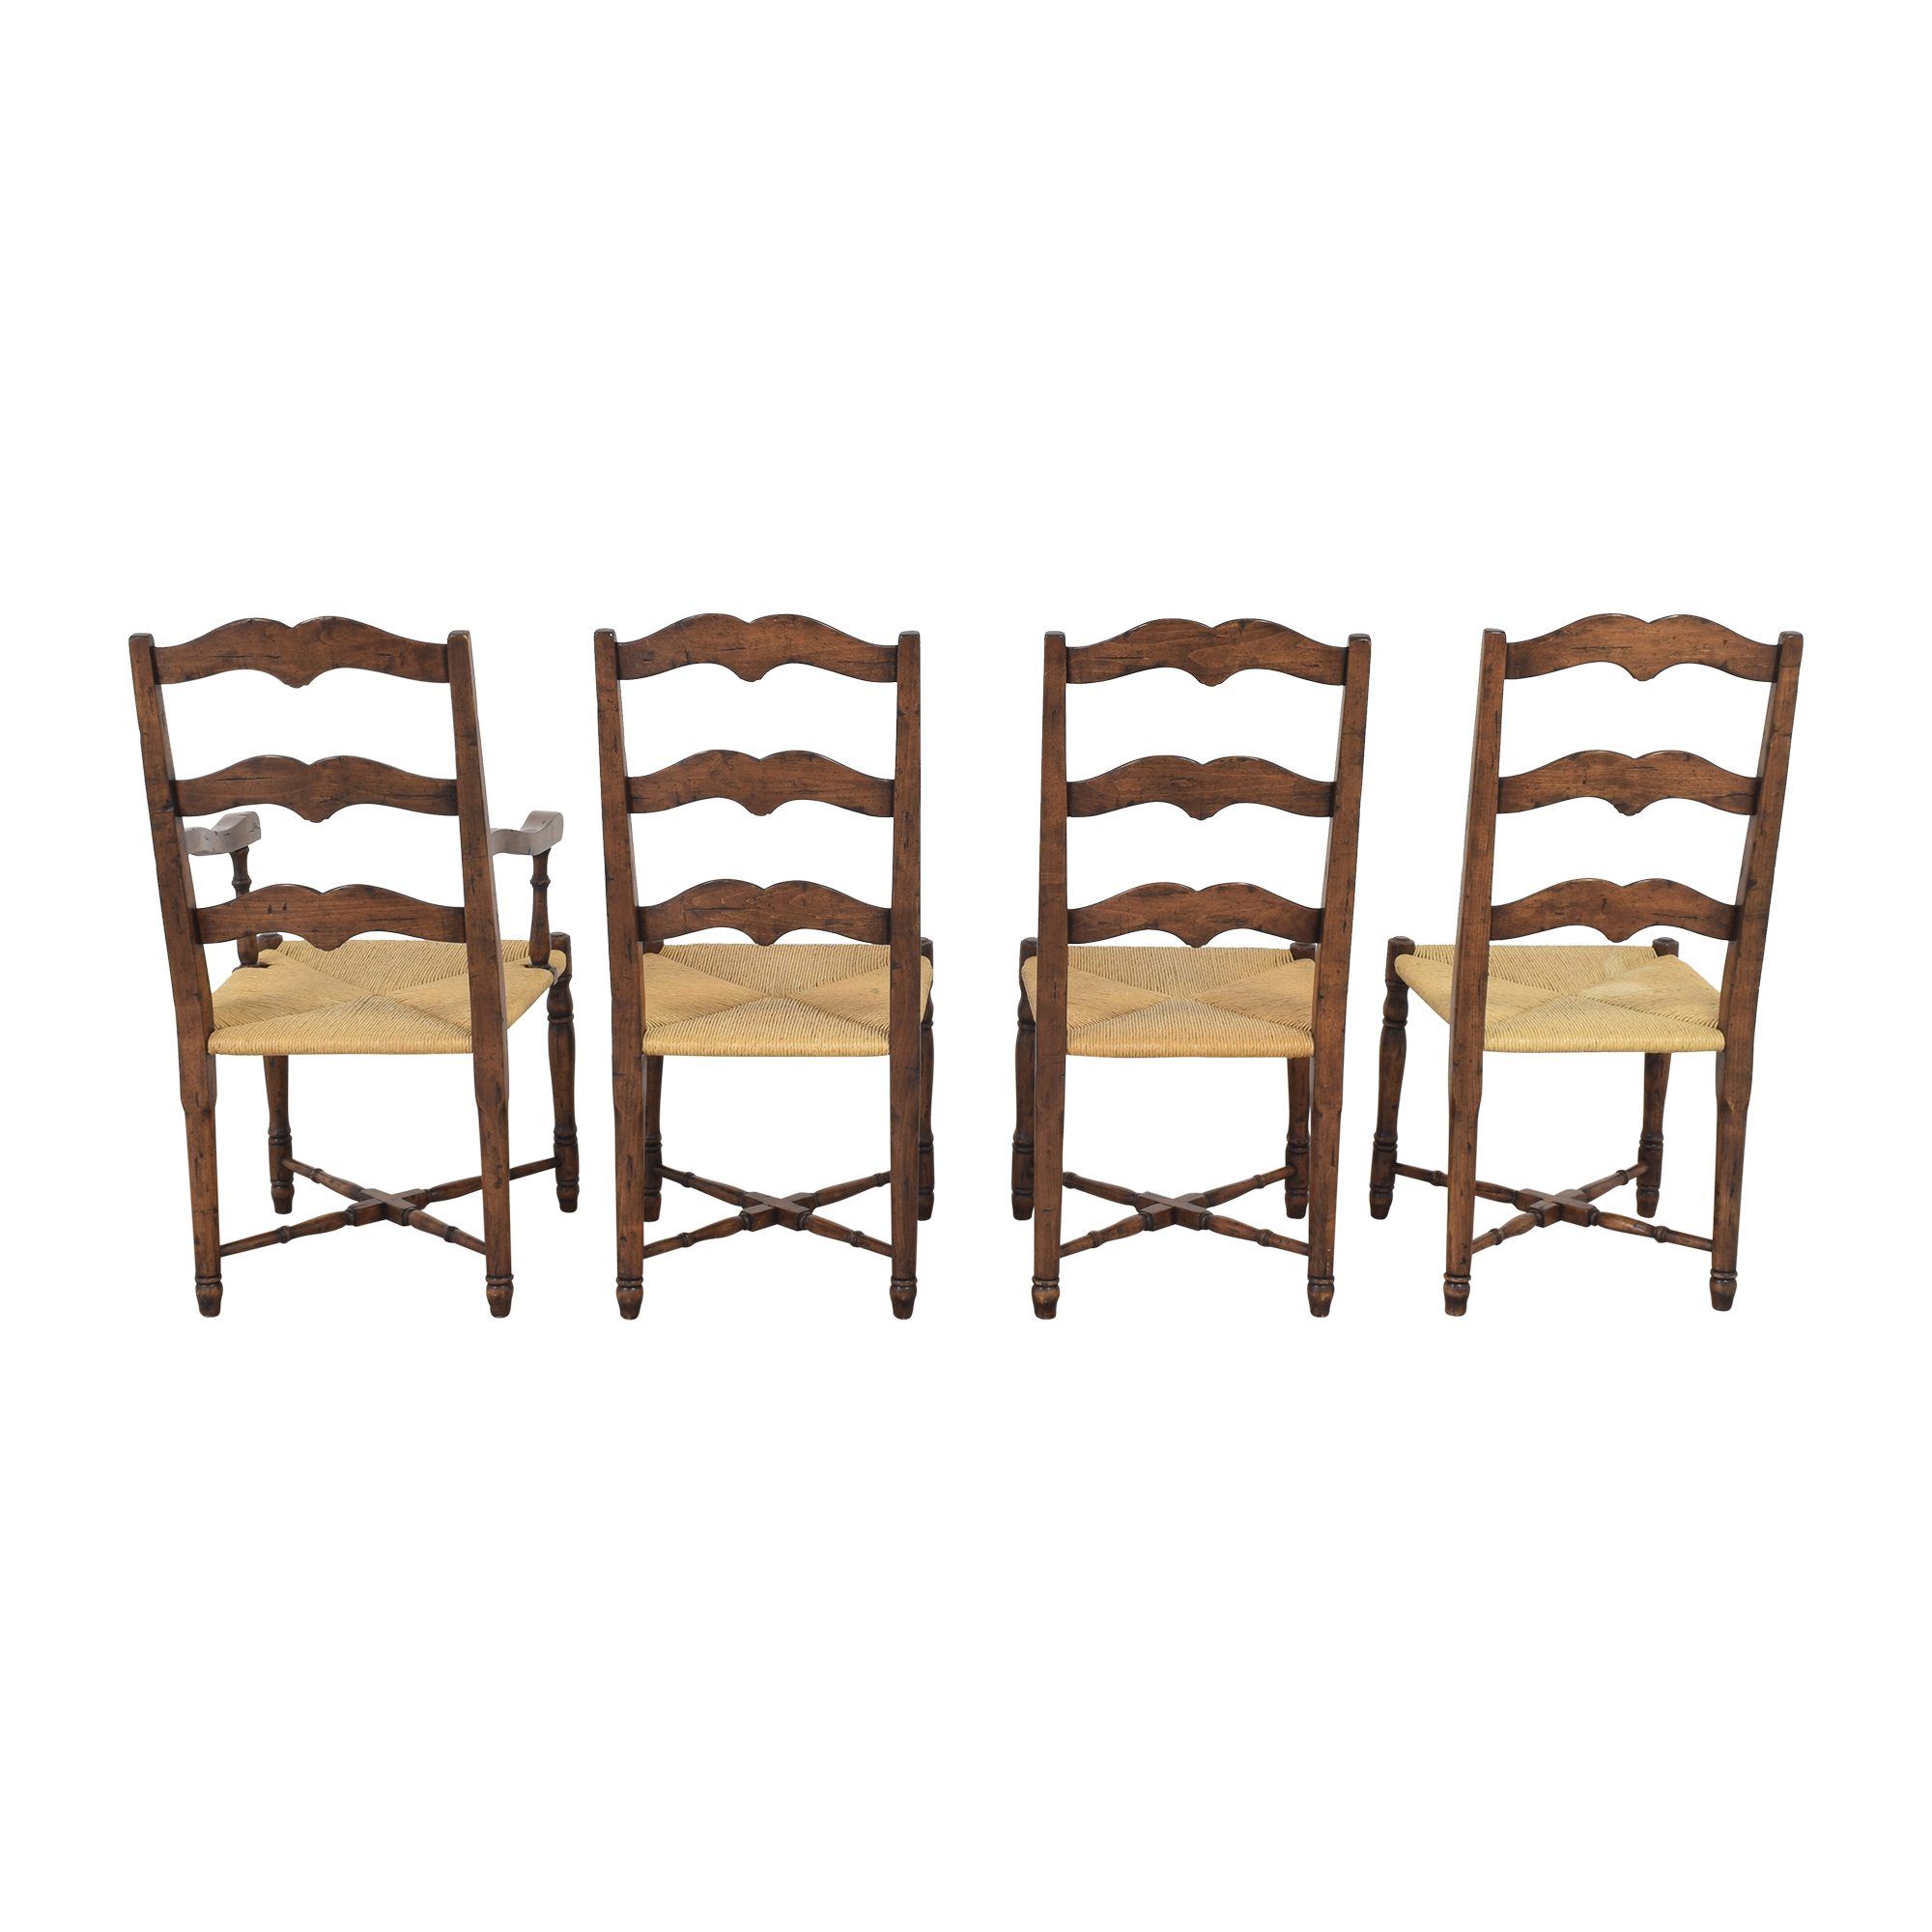 Pottery Barn Pottery Barn Lorraine Dining Chairs coupon